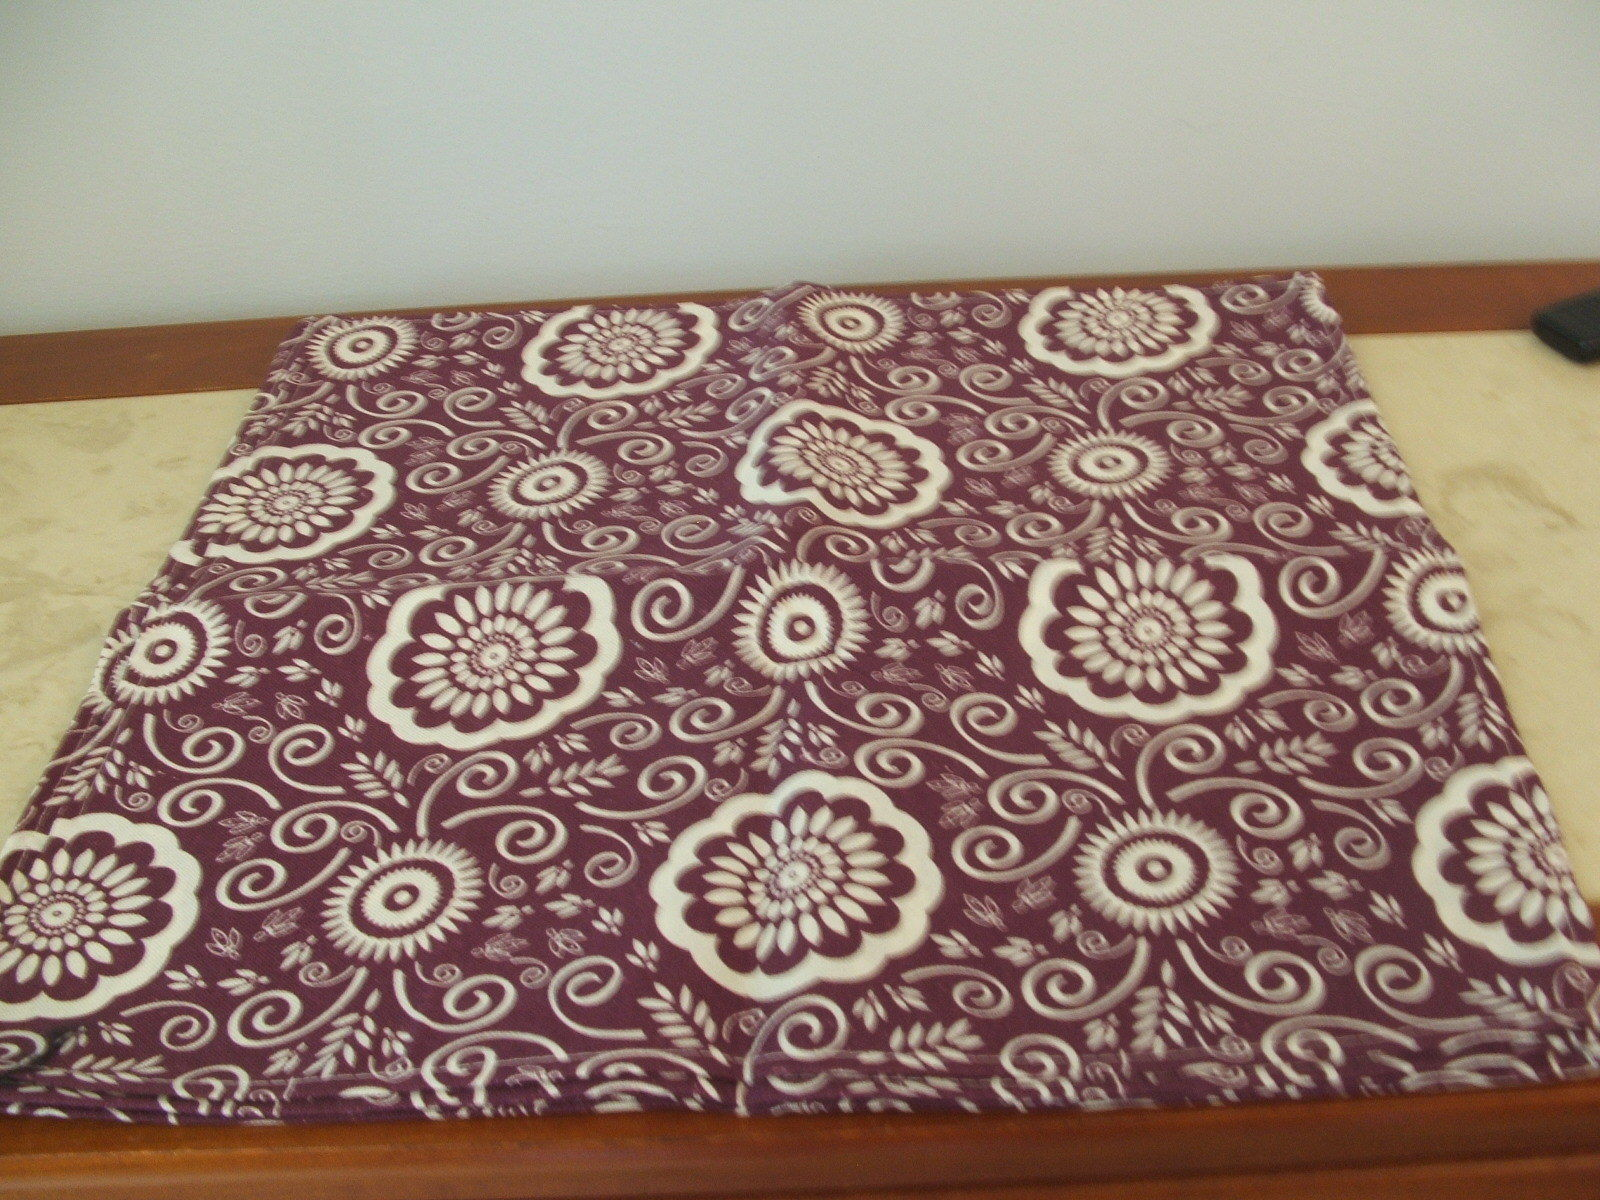 NWT BARCELONA Purple  $ 28.99  Cloth Napkins Set 4  by J. C. Penny Home